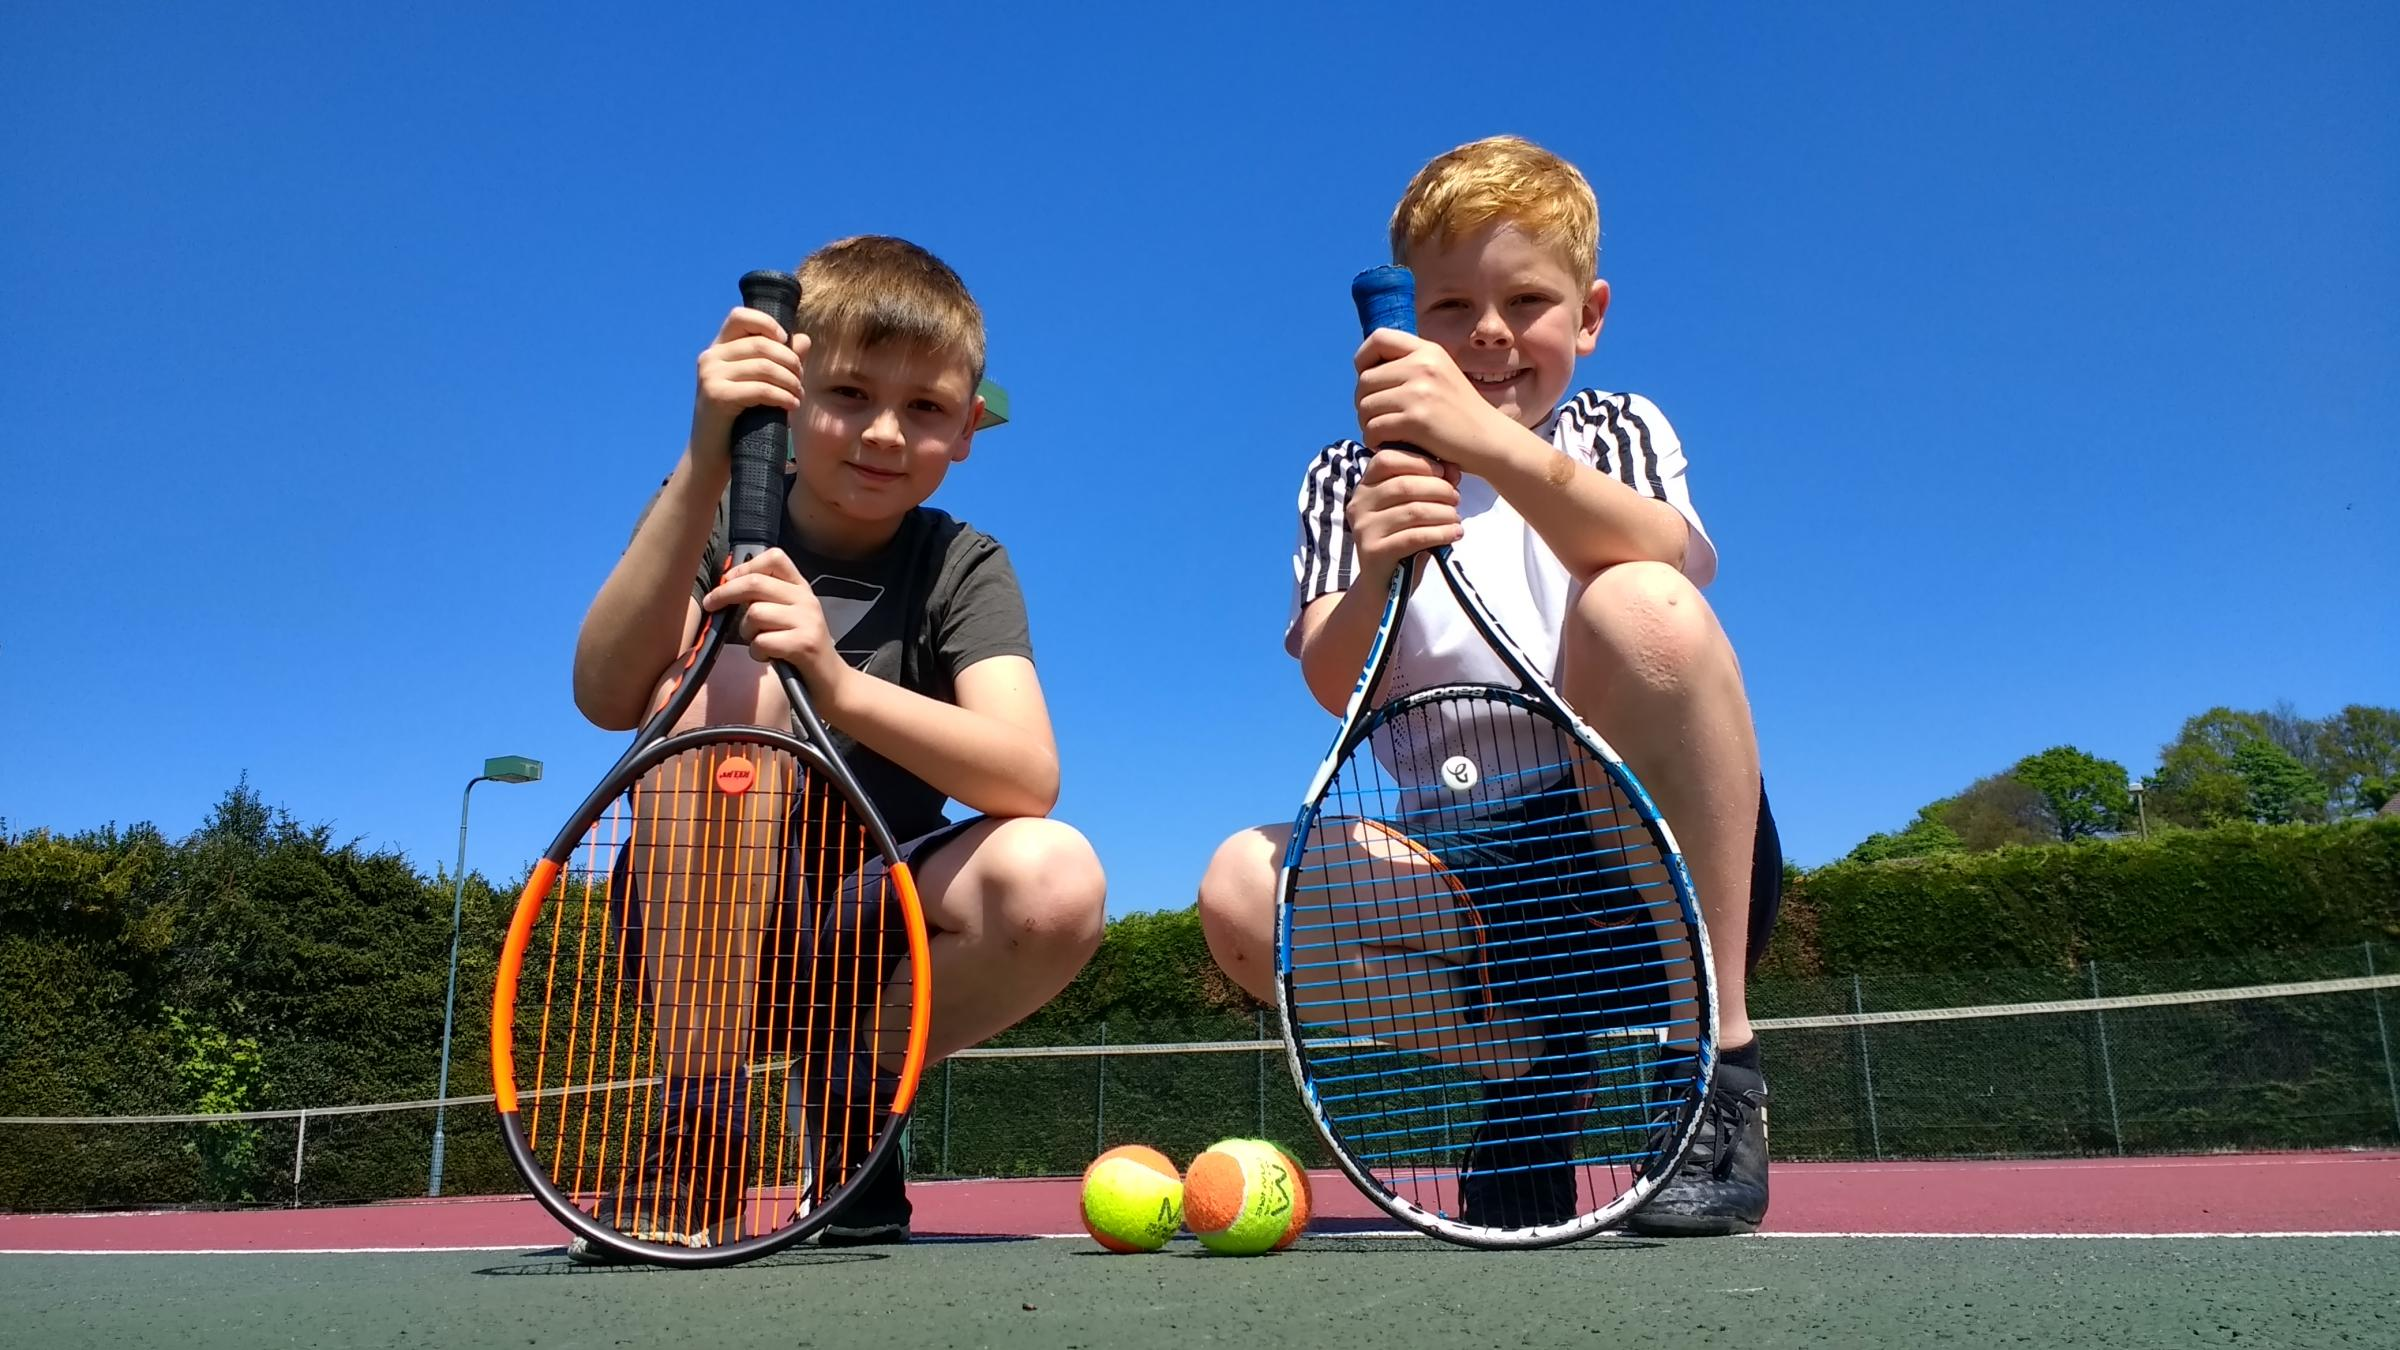 Louis Sylvester and Thomas Odell visited Bewdley Tennis Club's open day last year.